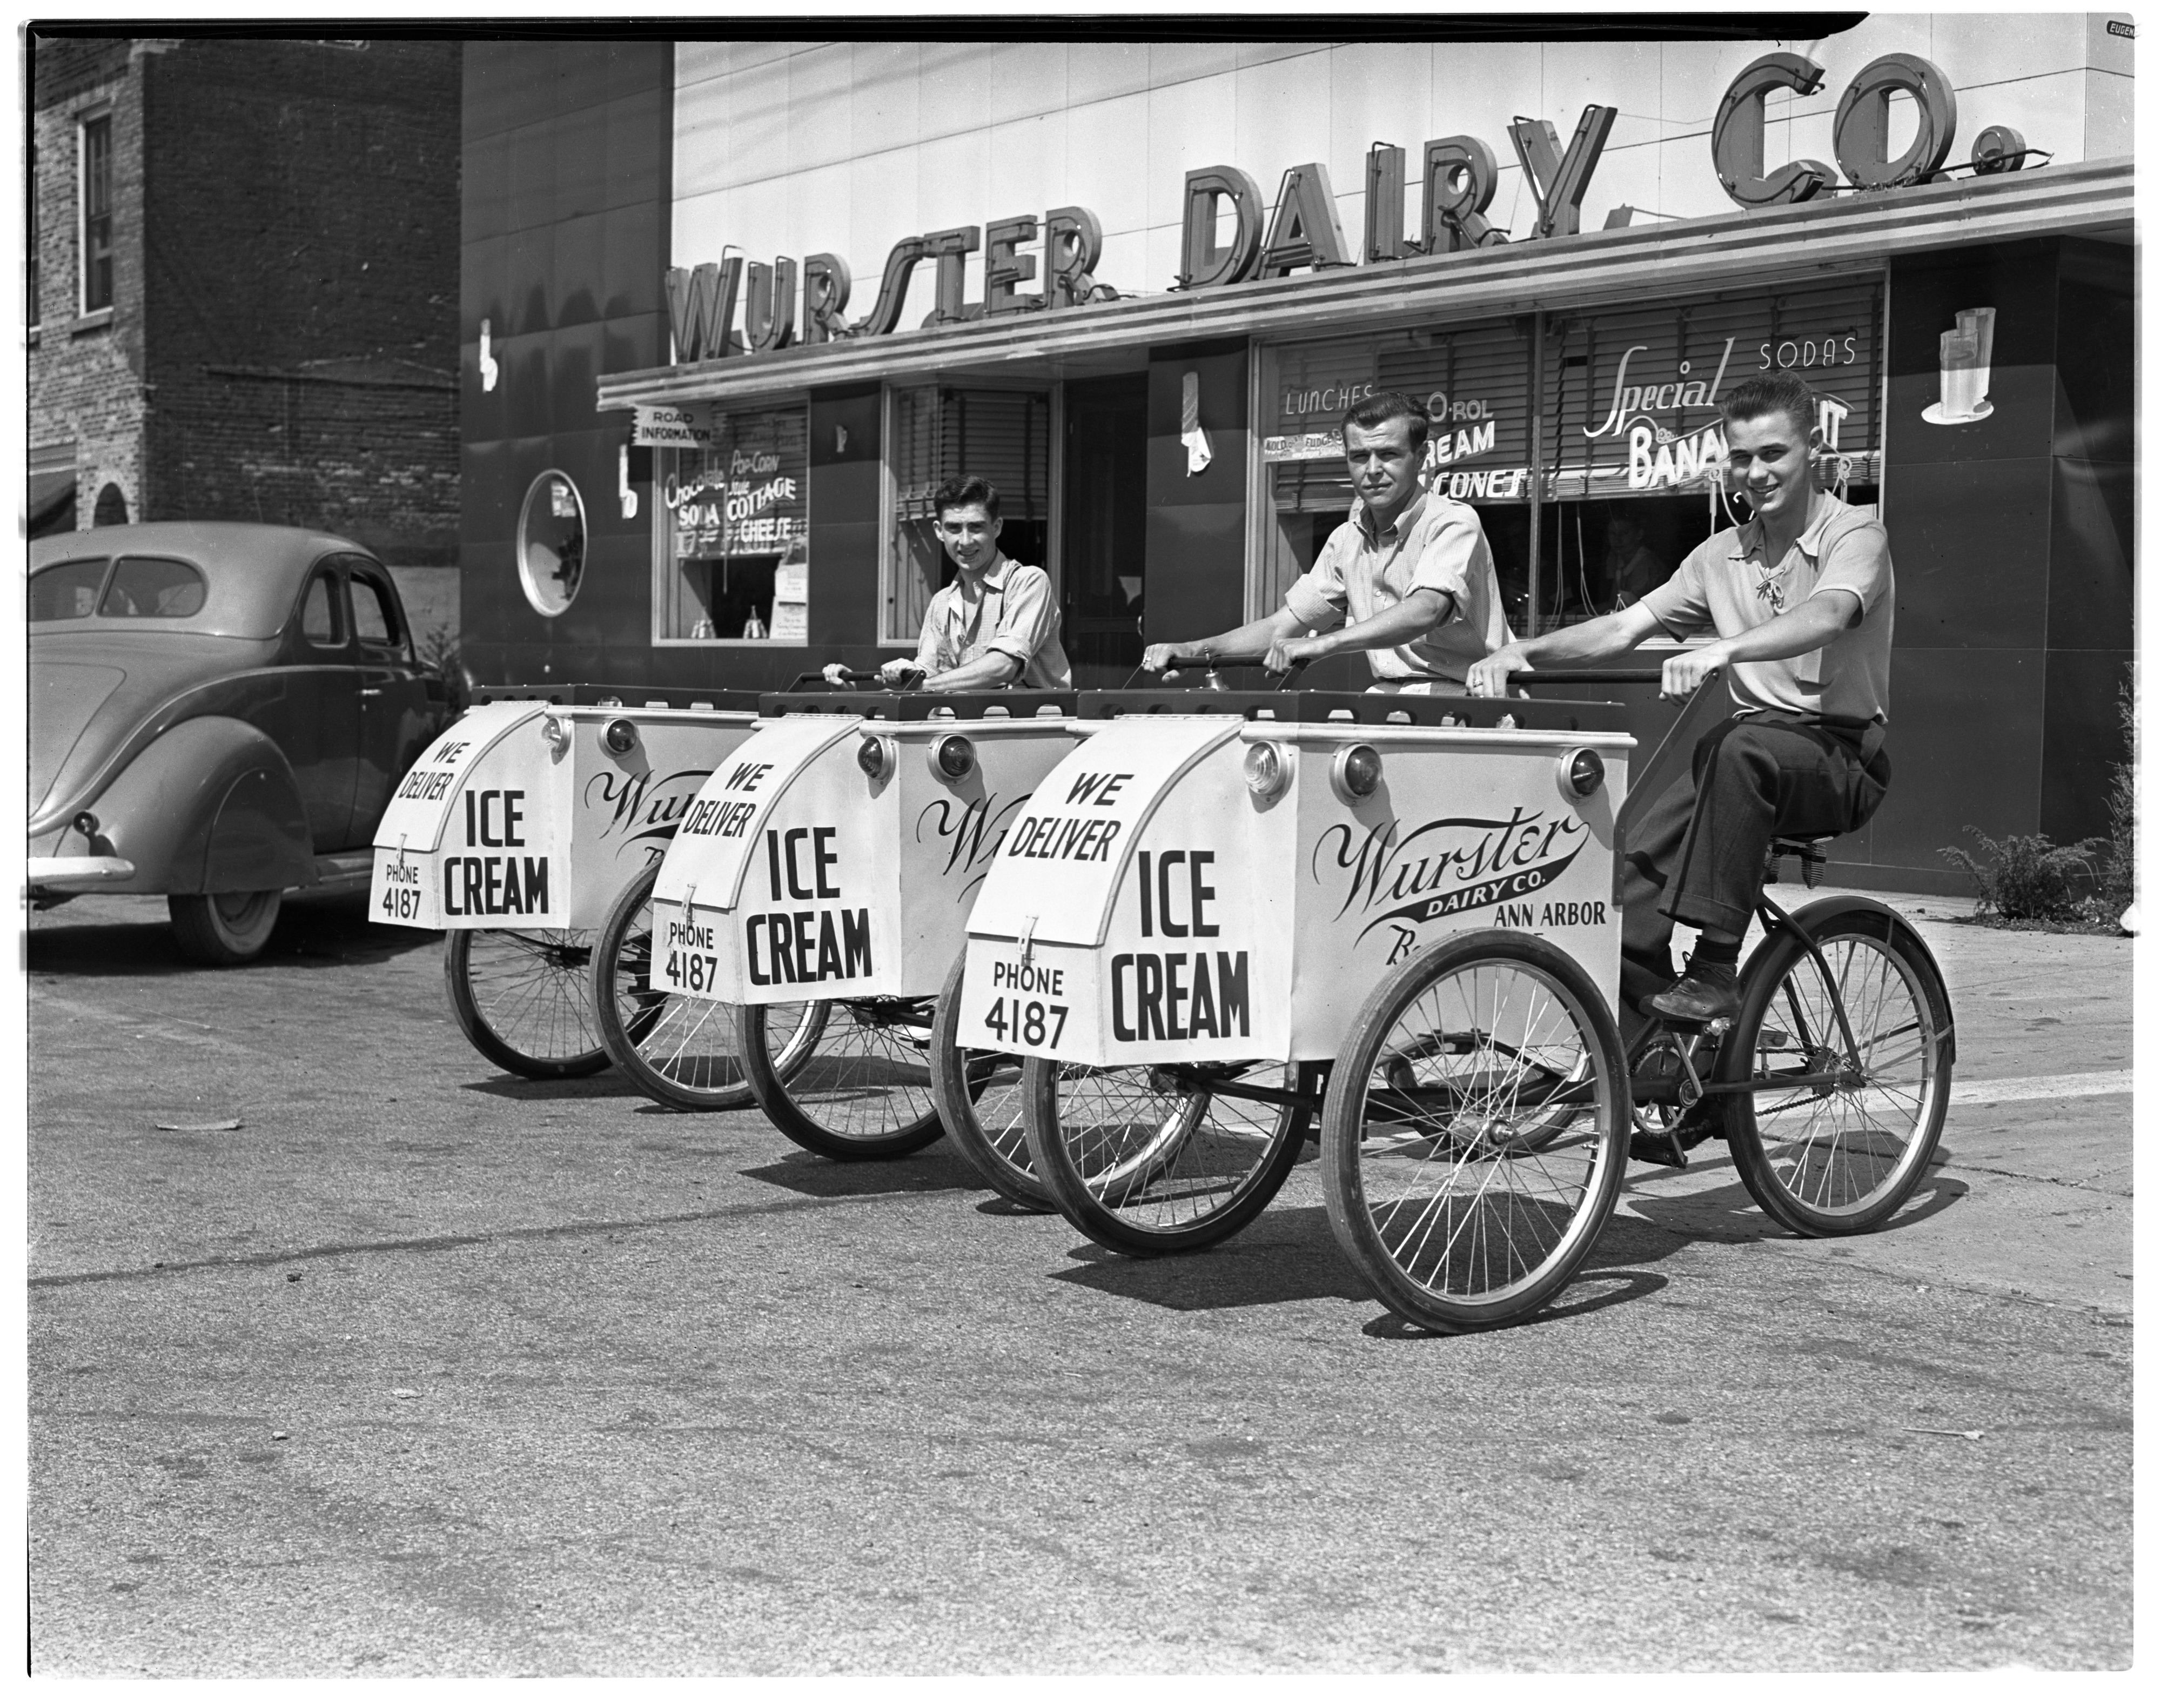 Wurster Dairy Ice Cream Carts, 1938 image